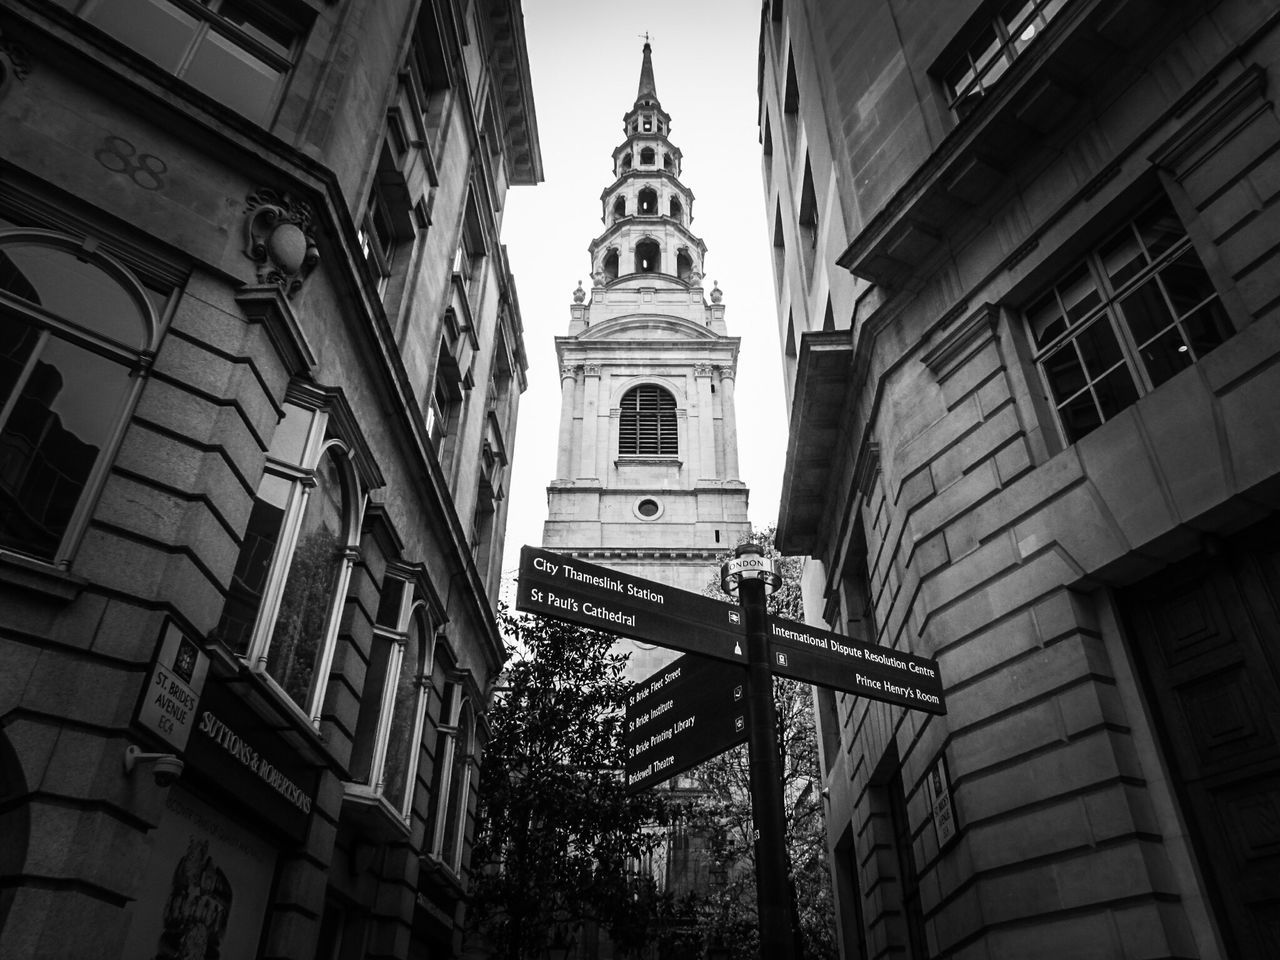 Building Exterior Built Structure Londra Stay Strong London Life Londoncity Londonthroughmycam Londononly Londonlife LONDON❤ London Lifestyle London_only London Blackandwhite Black And White Blackandwhitephotography City Street Cityexplorer City Canon Canonphotography Mypic Instagram Pics Low Angle View Outdoors